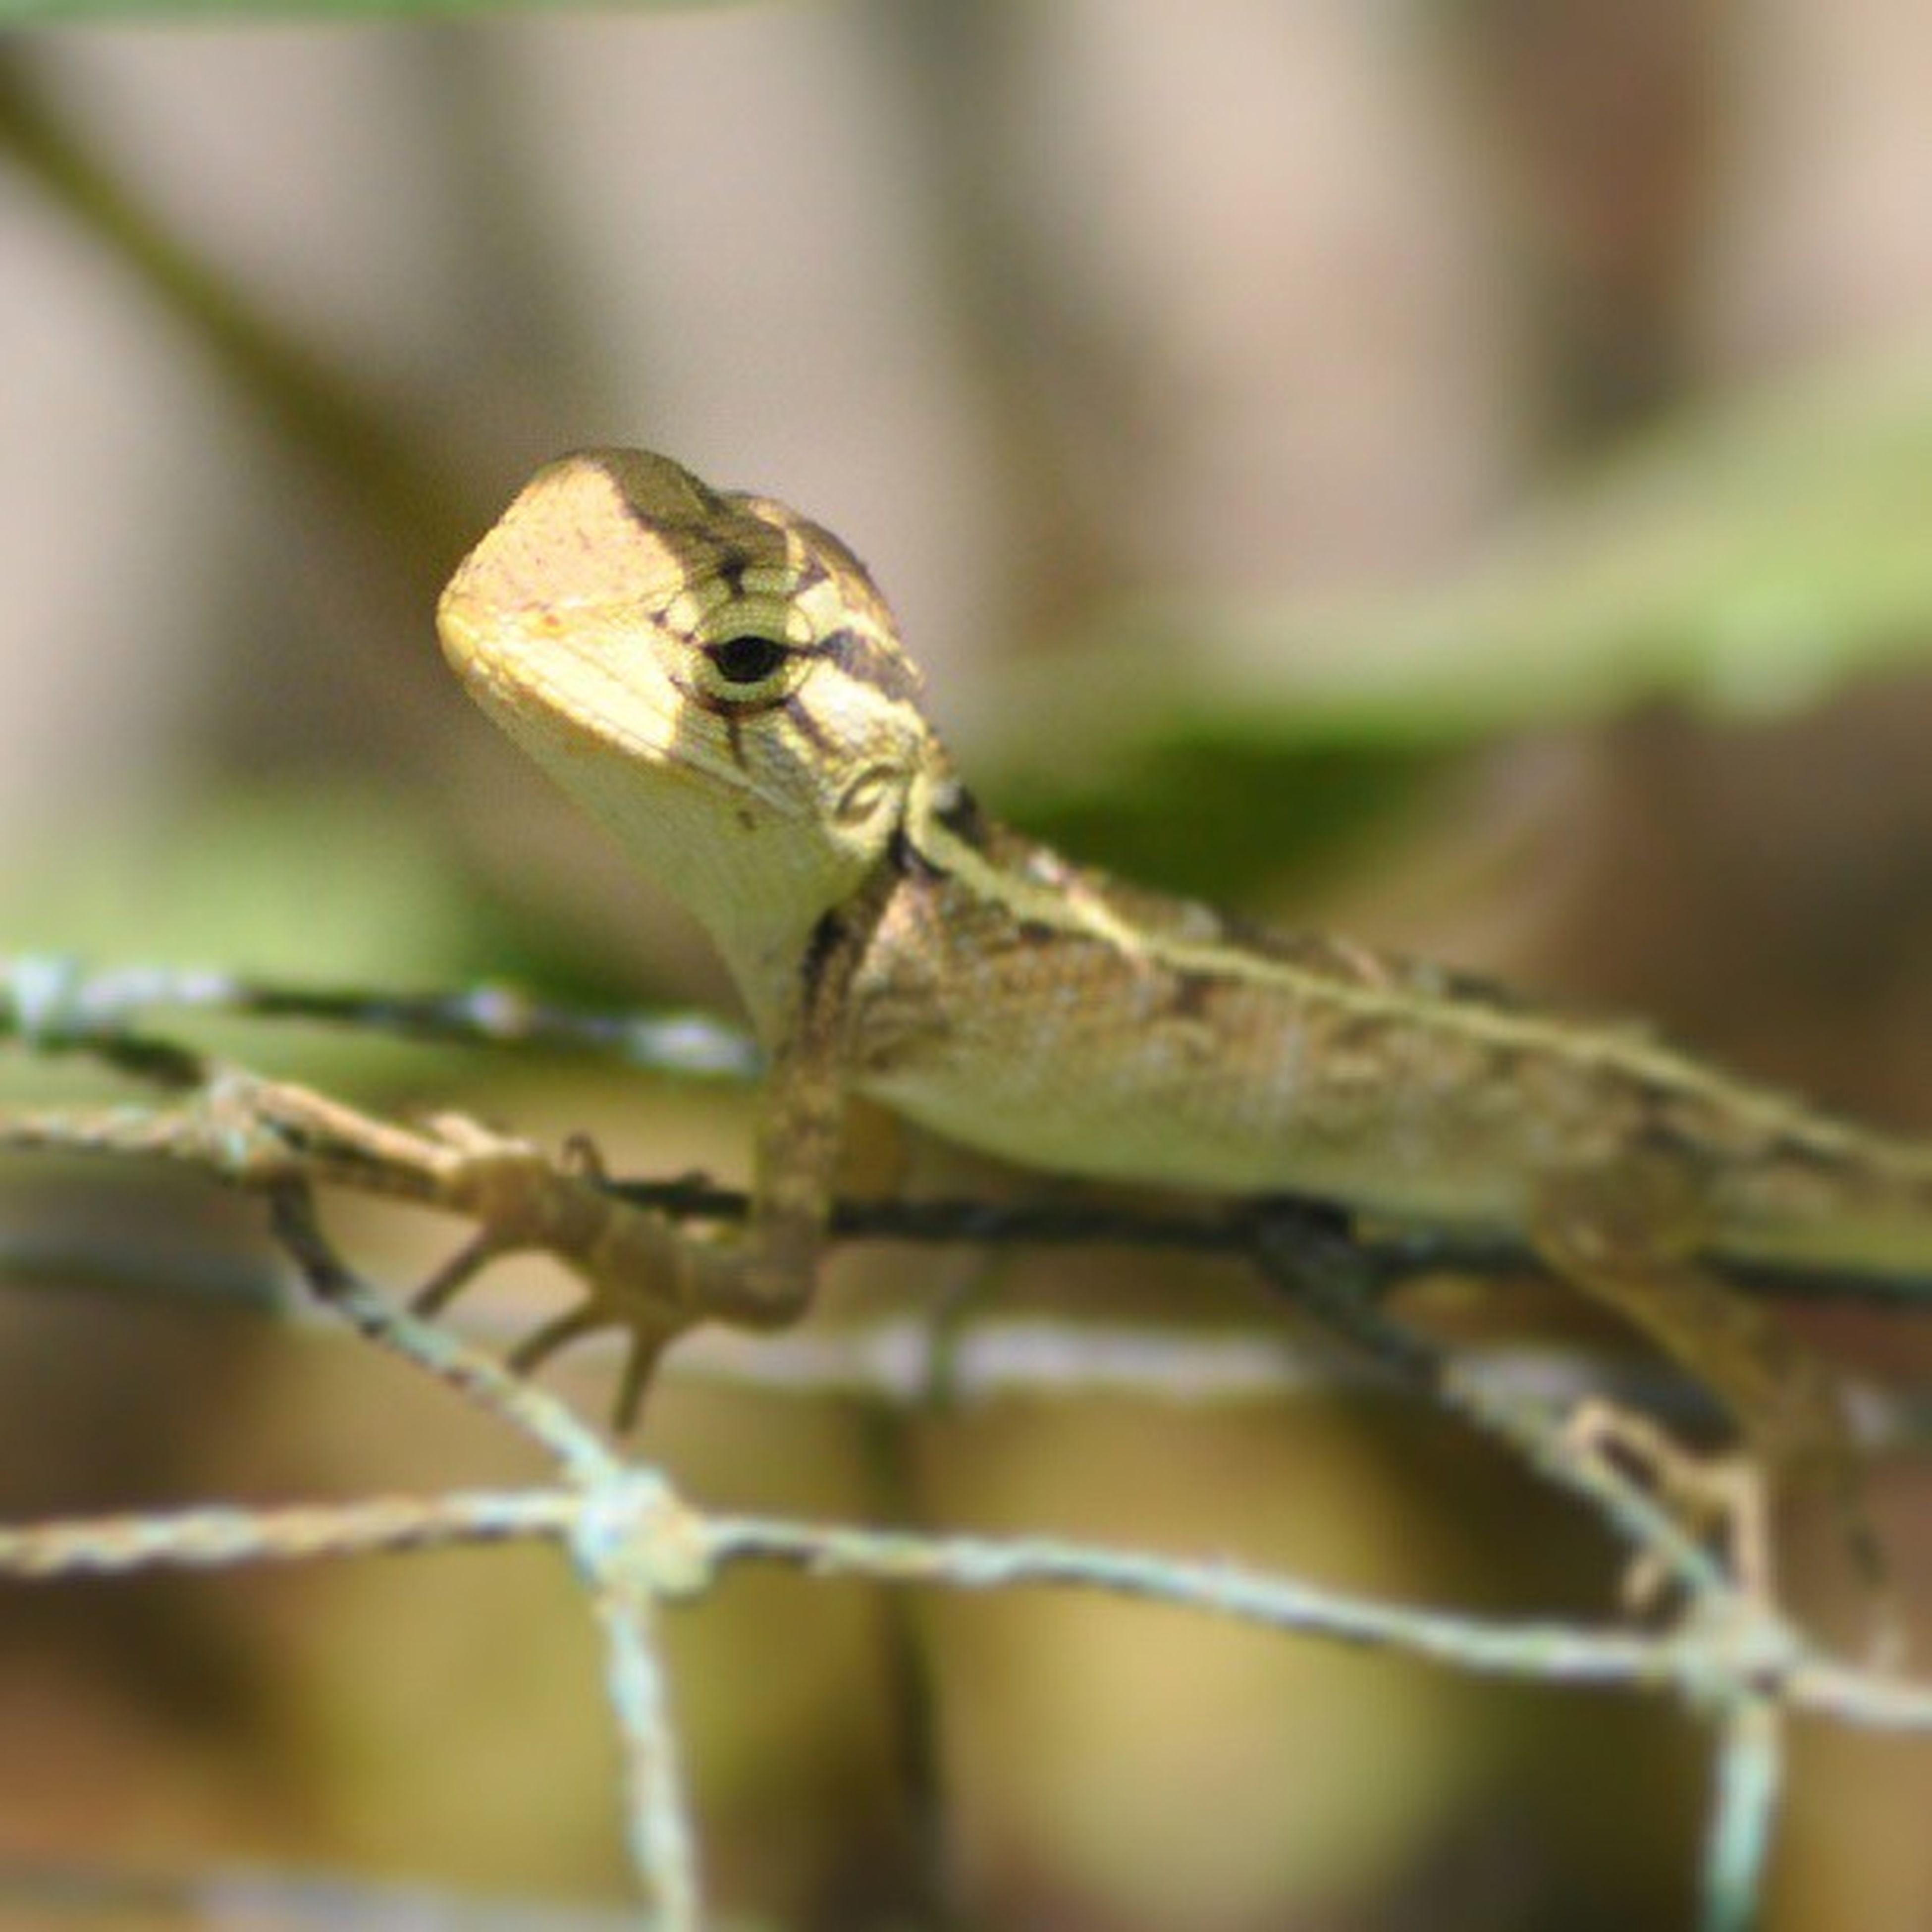 animal themes, one animal, animals in the wild, wildlife, focus on foreground, close-up, selective focus, insect, twig, nature, perching, branch, day, outdoors, full length, no people, side view, lizard, zoology, reptile